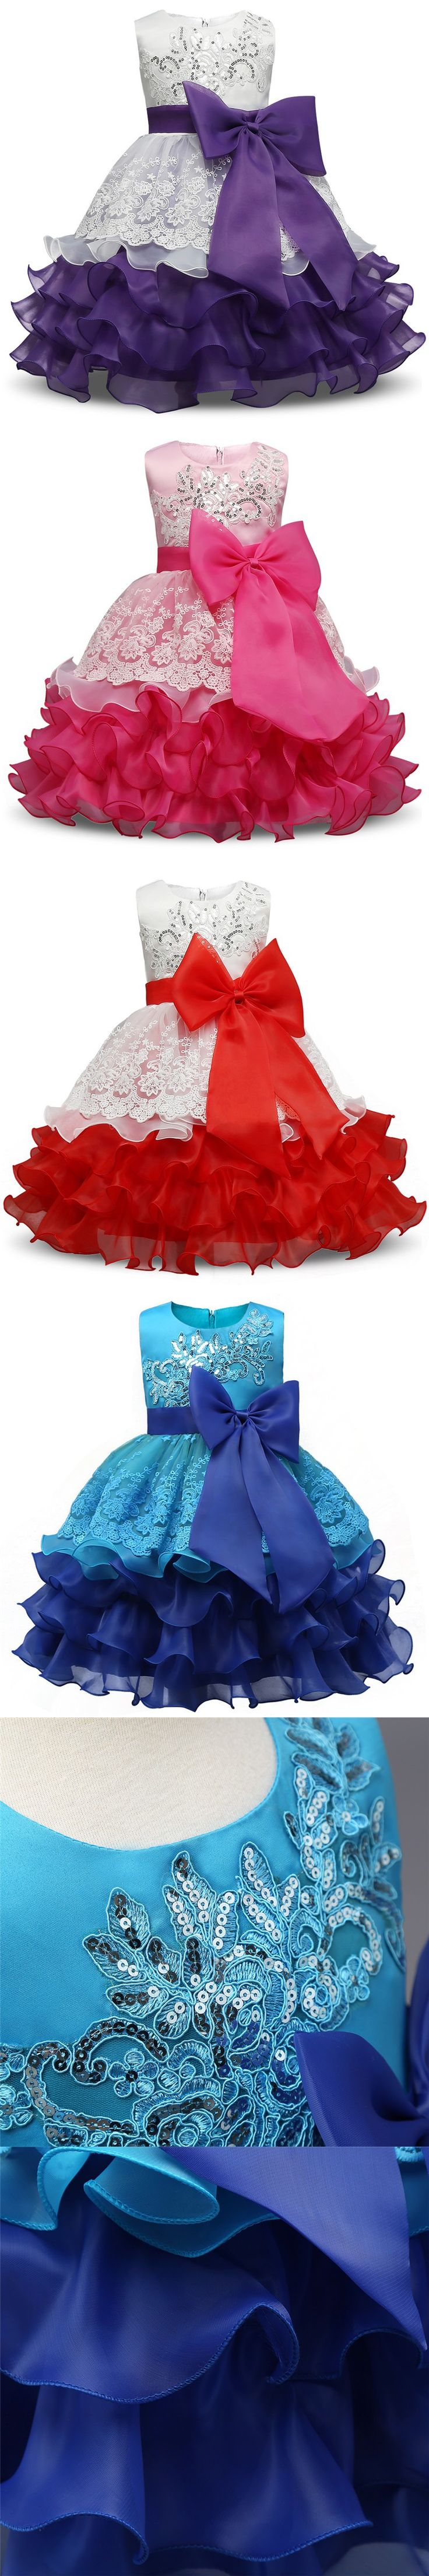 Fancy Girl Dress For Wedding Birthday Kids Events Party Wear Brand Toddler Girl Tutu Dresses Baby Baptism Clothes For Girls 8Yrs $18.73